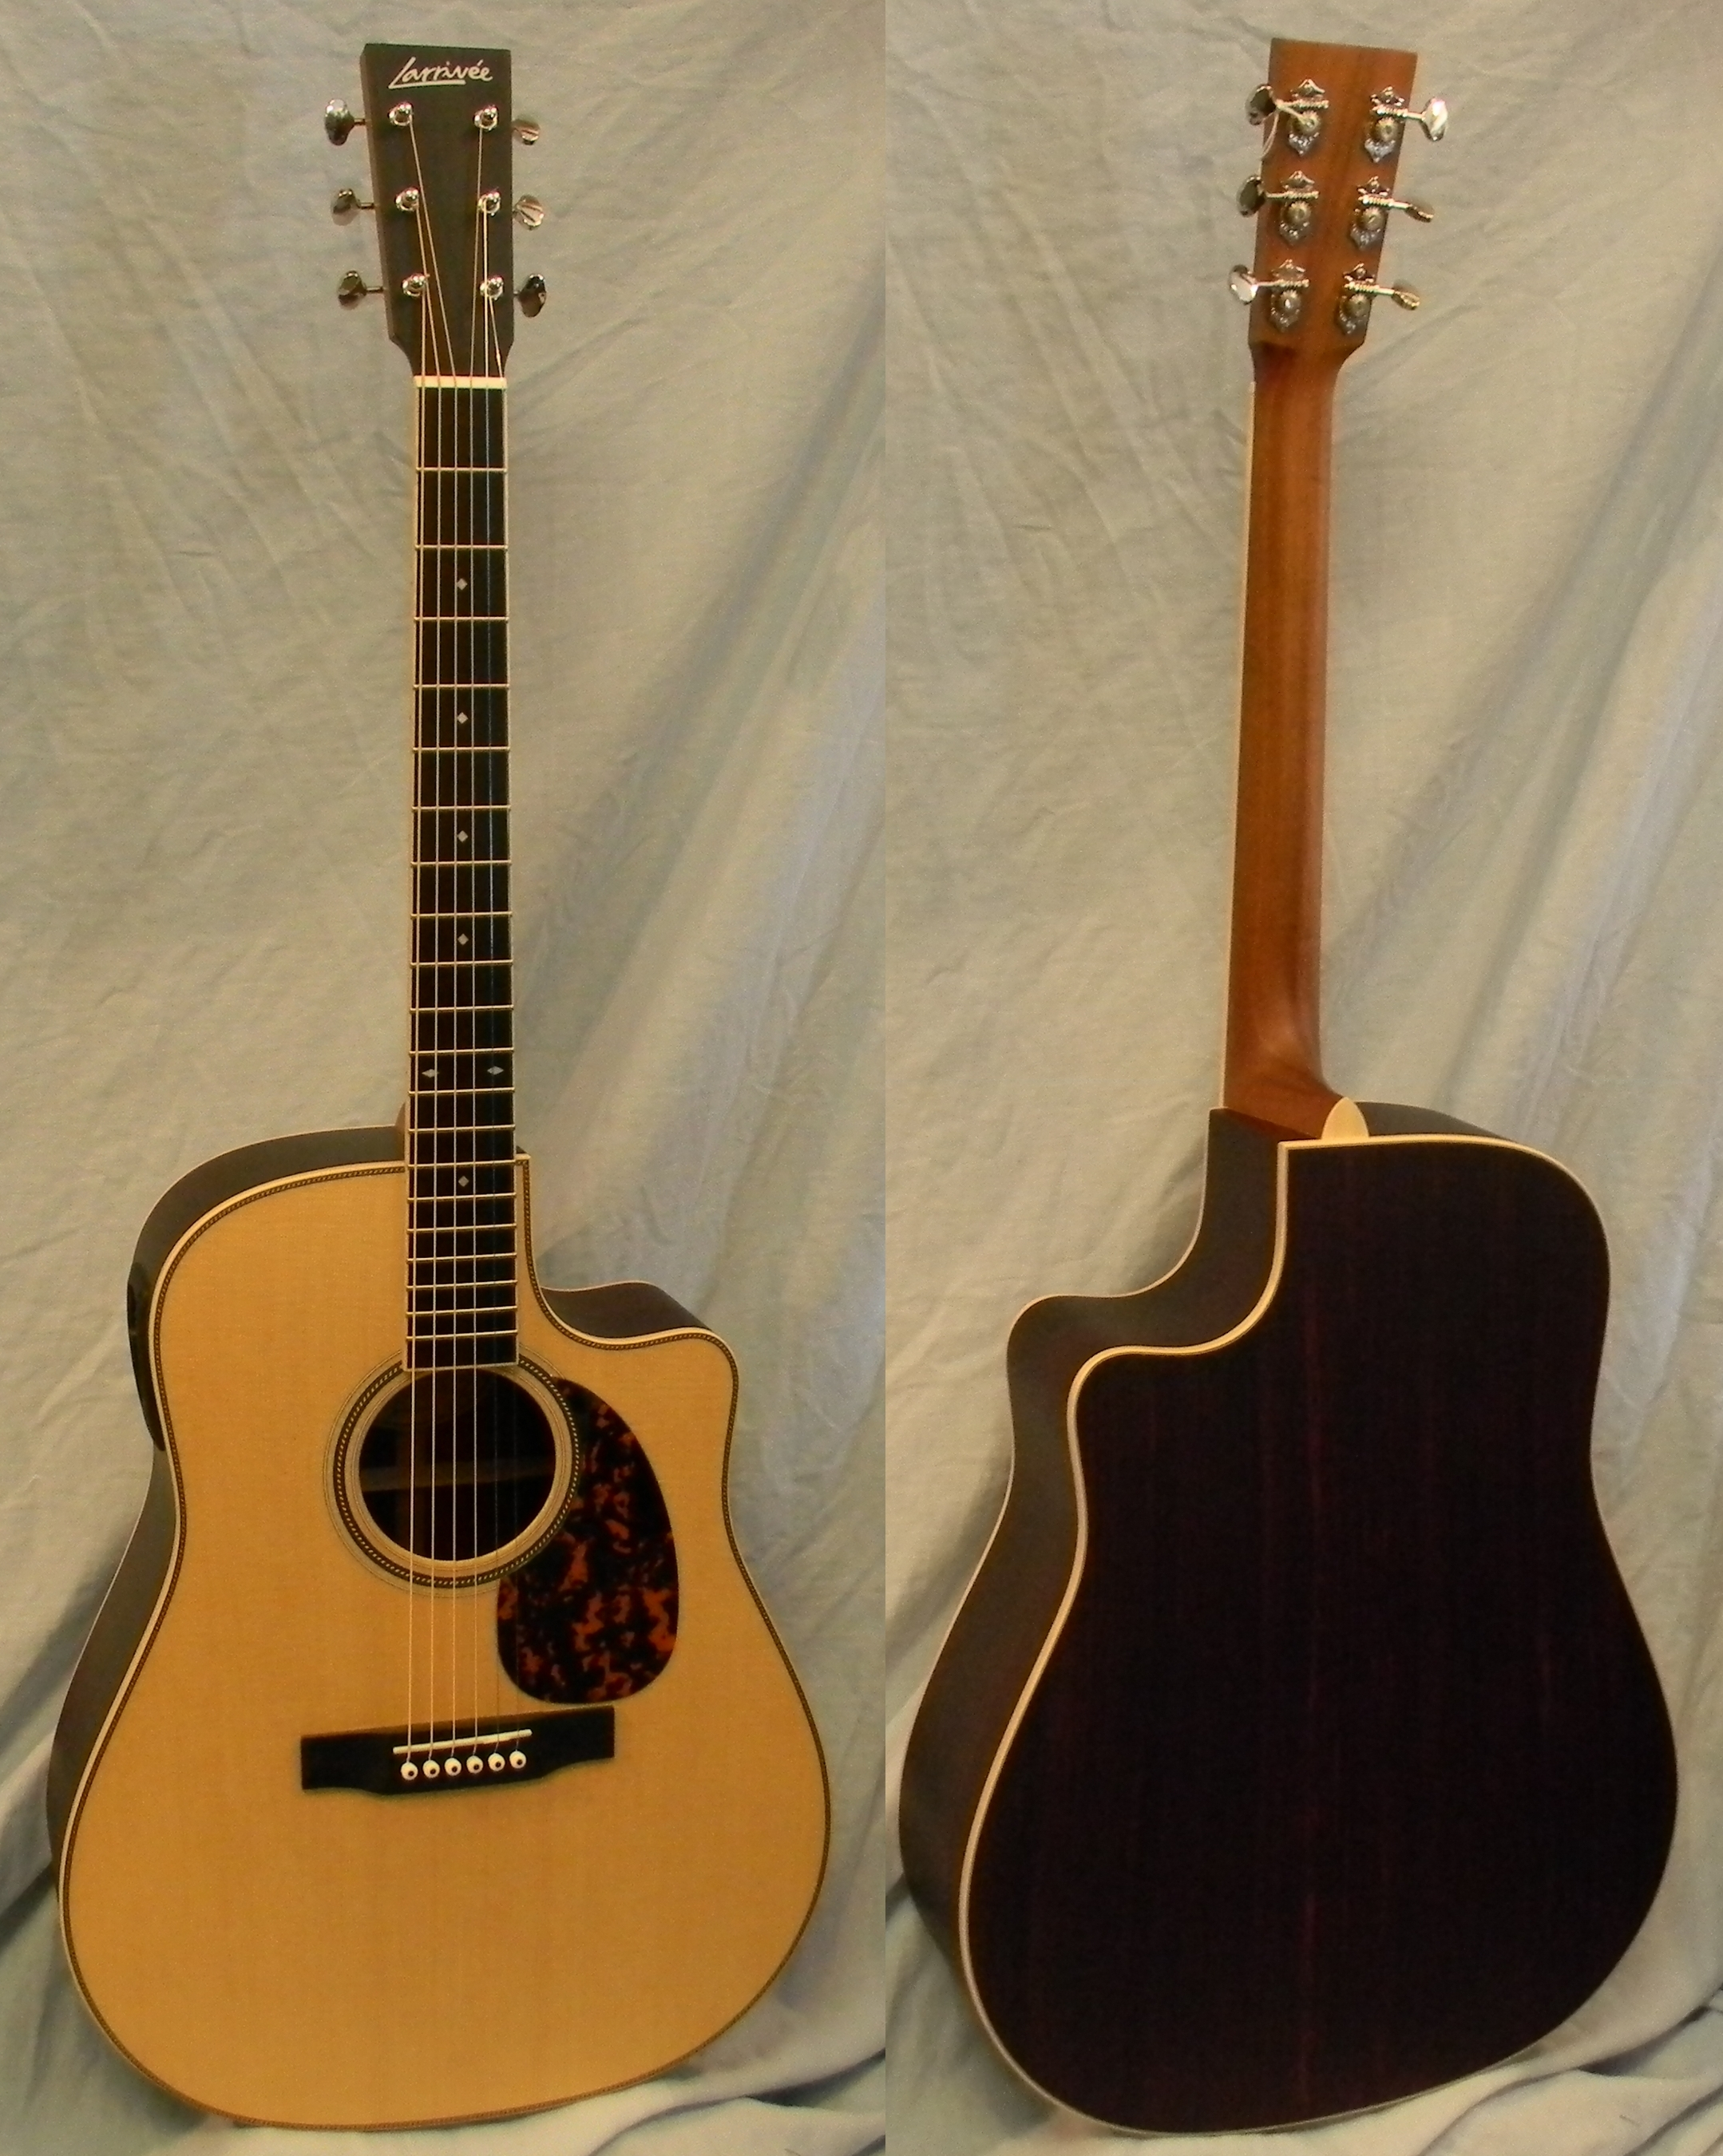 DV 40 R with Baggs Stagepro pickup system. List: $2,599.00 SAL: $1,975.00